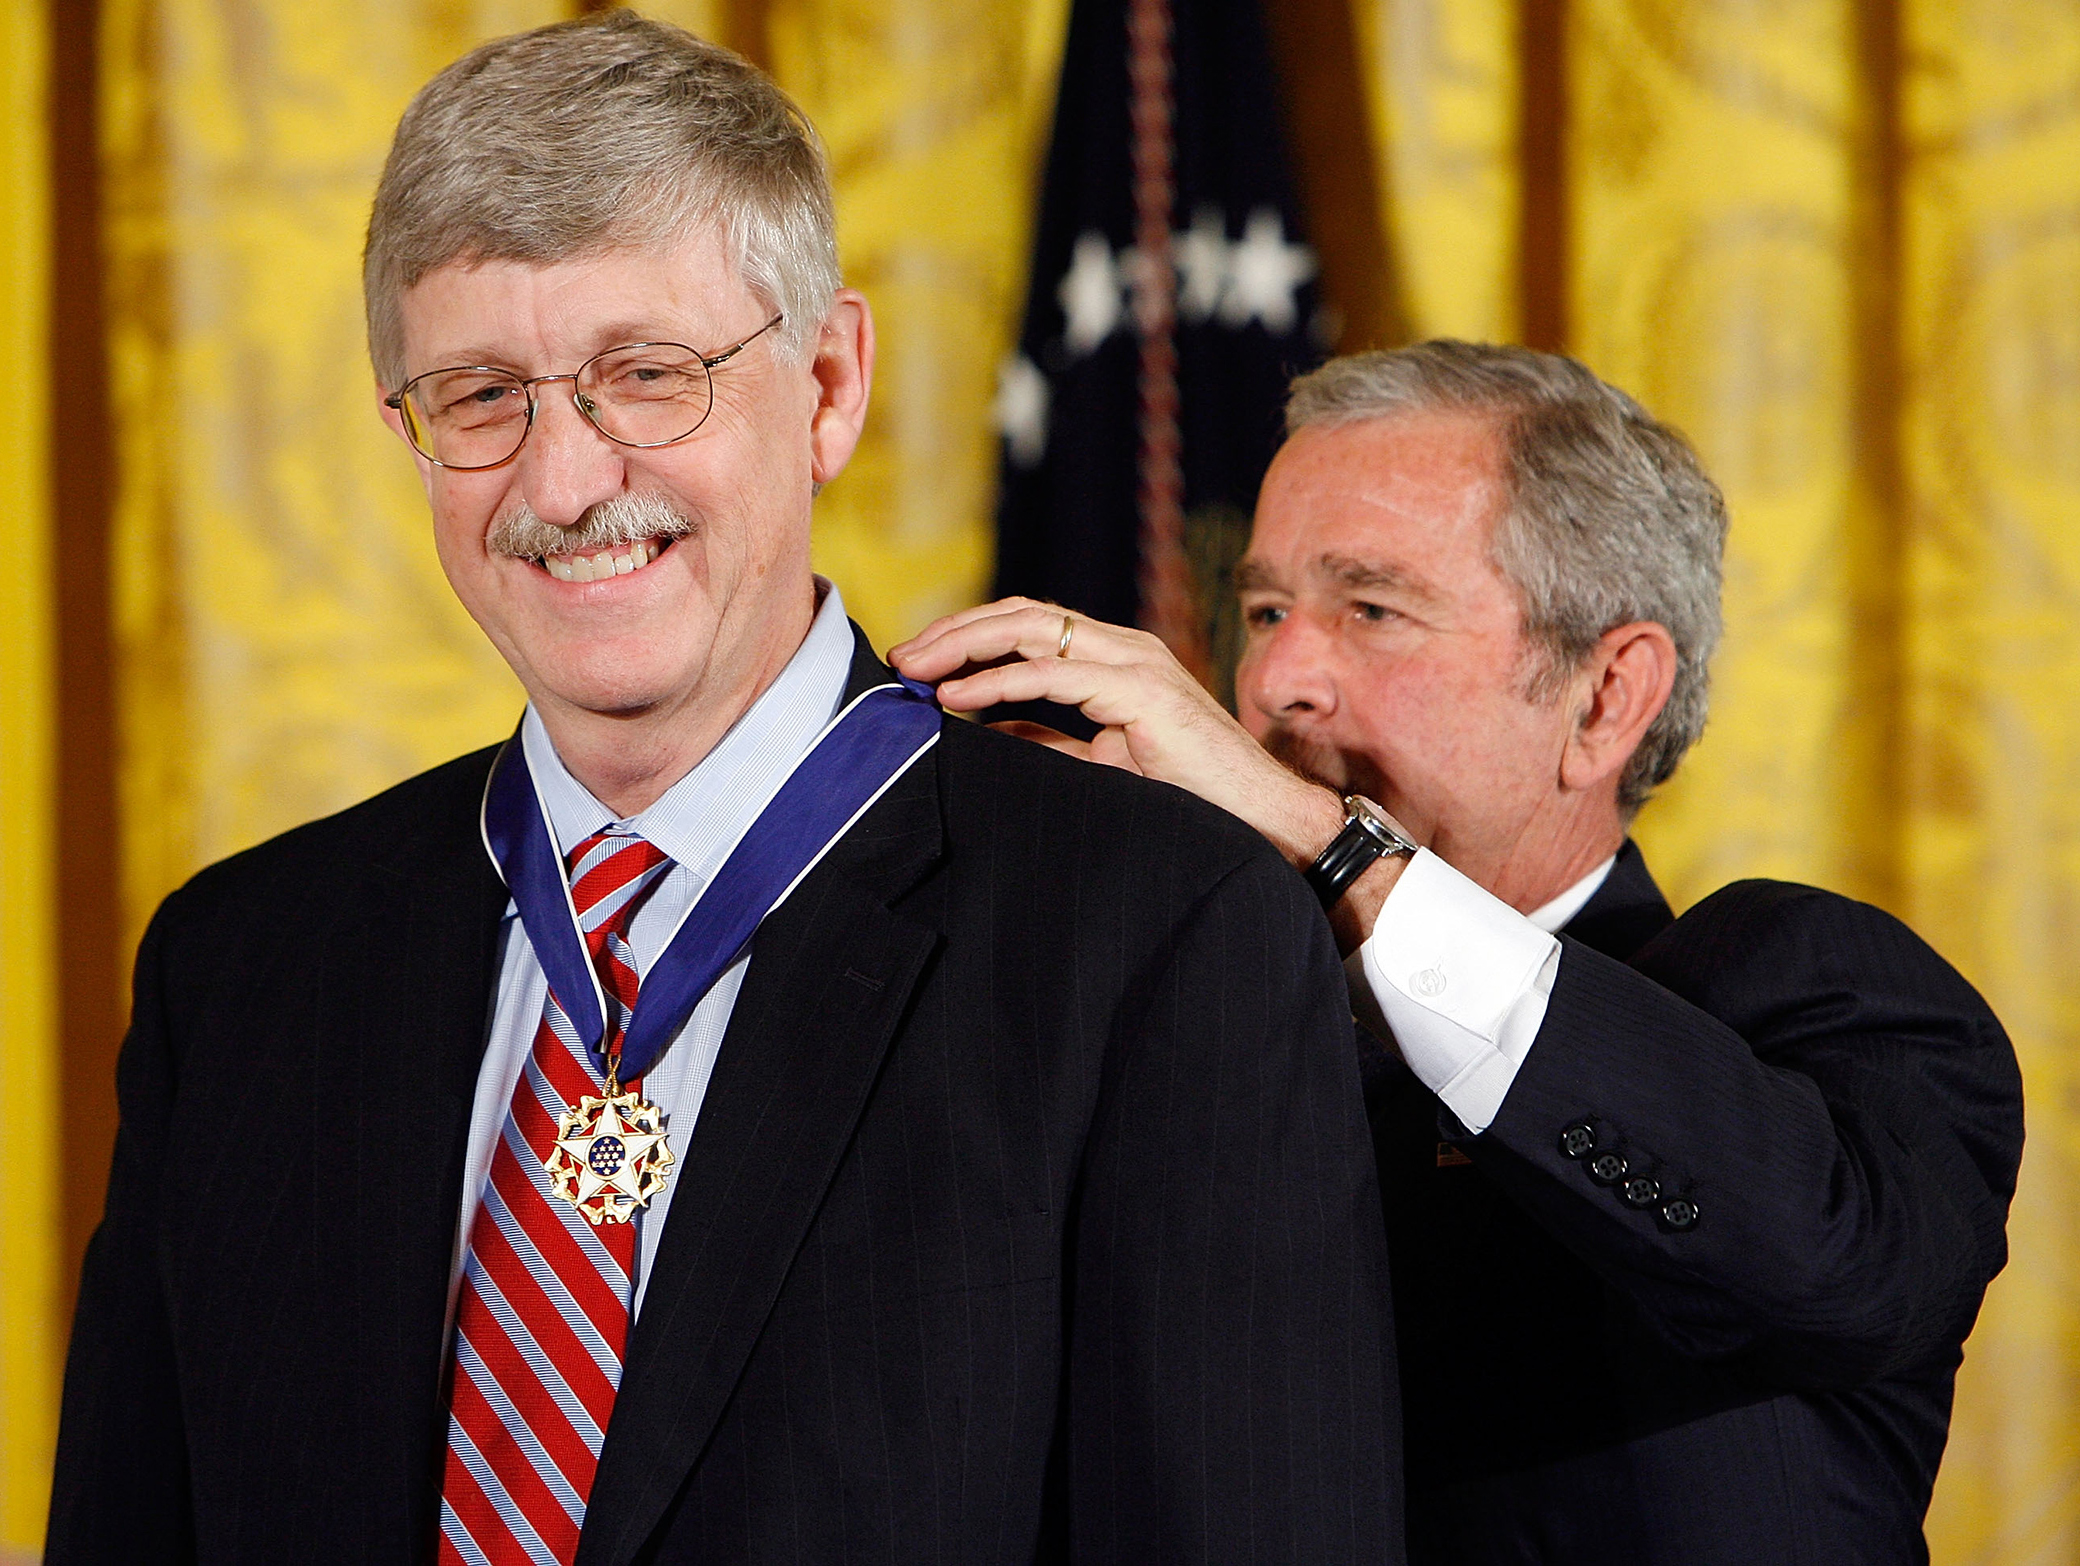 2007: George W. Bush awards Collins the presidential medal of freedom